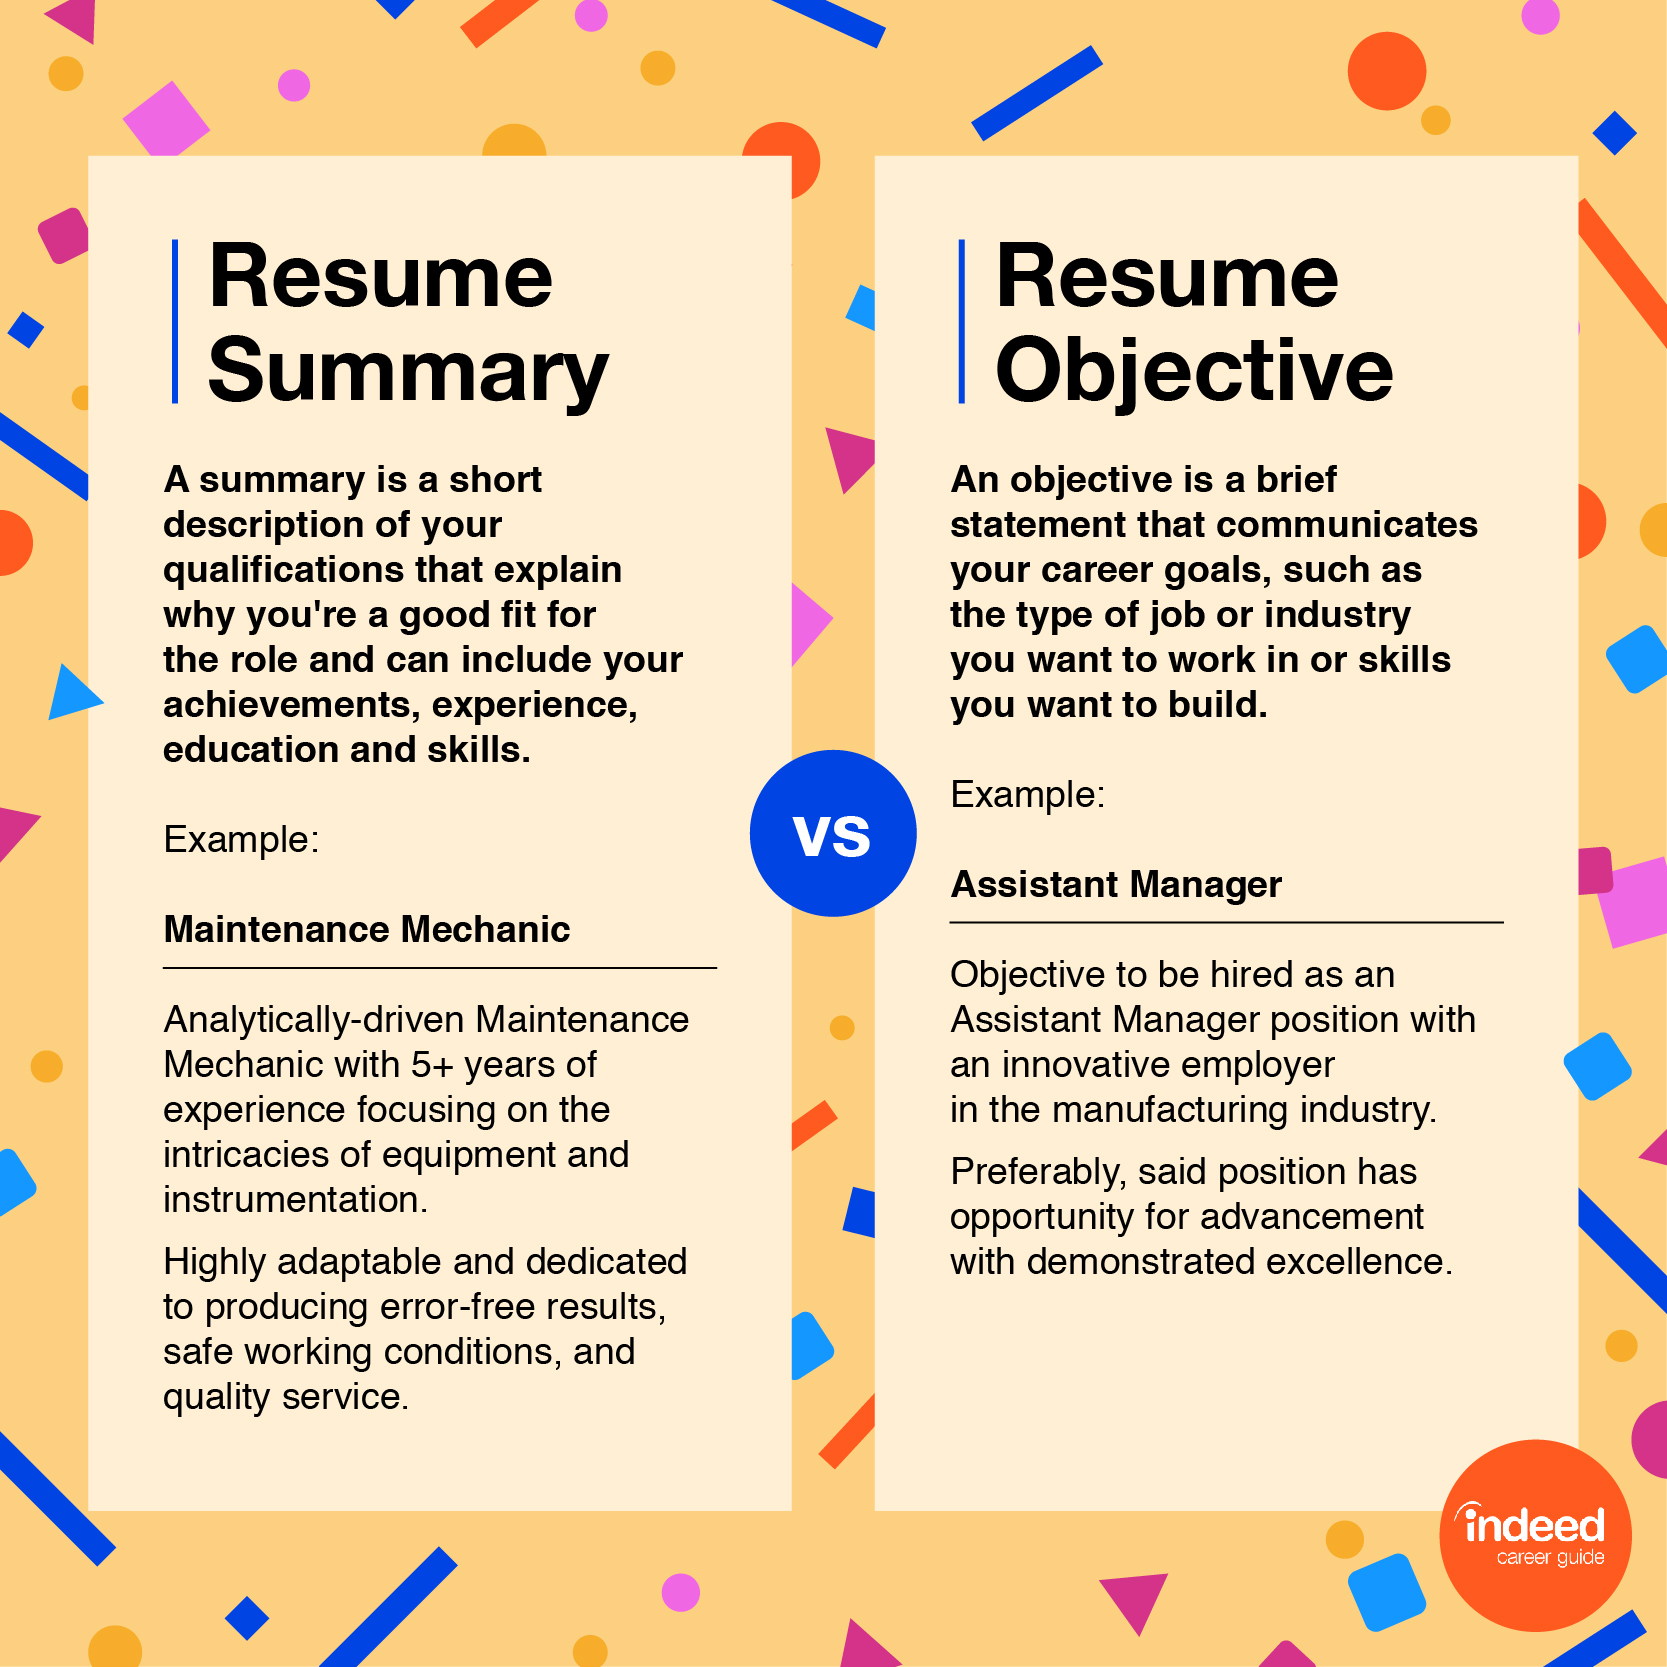 resume summary guide examples indeed best short for v4 treasury manager safety watch Resume Best Short Summary For Resume